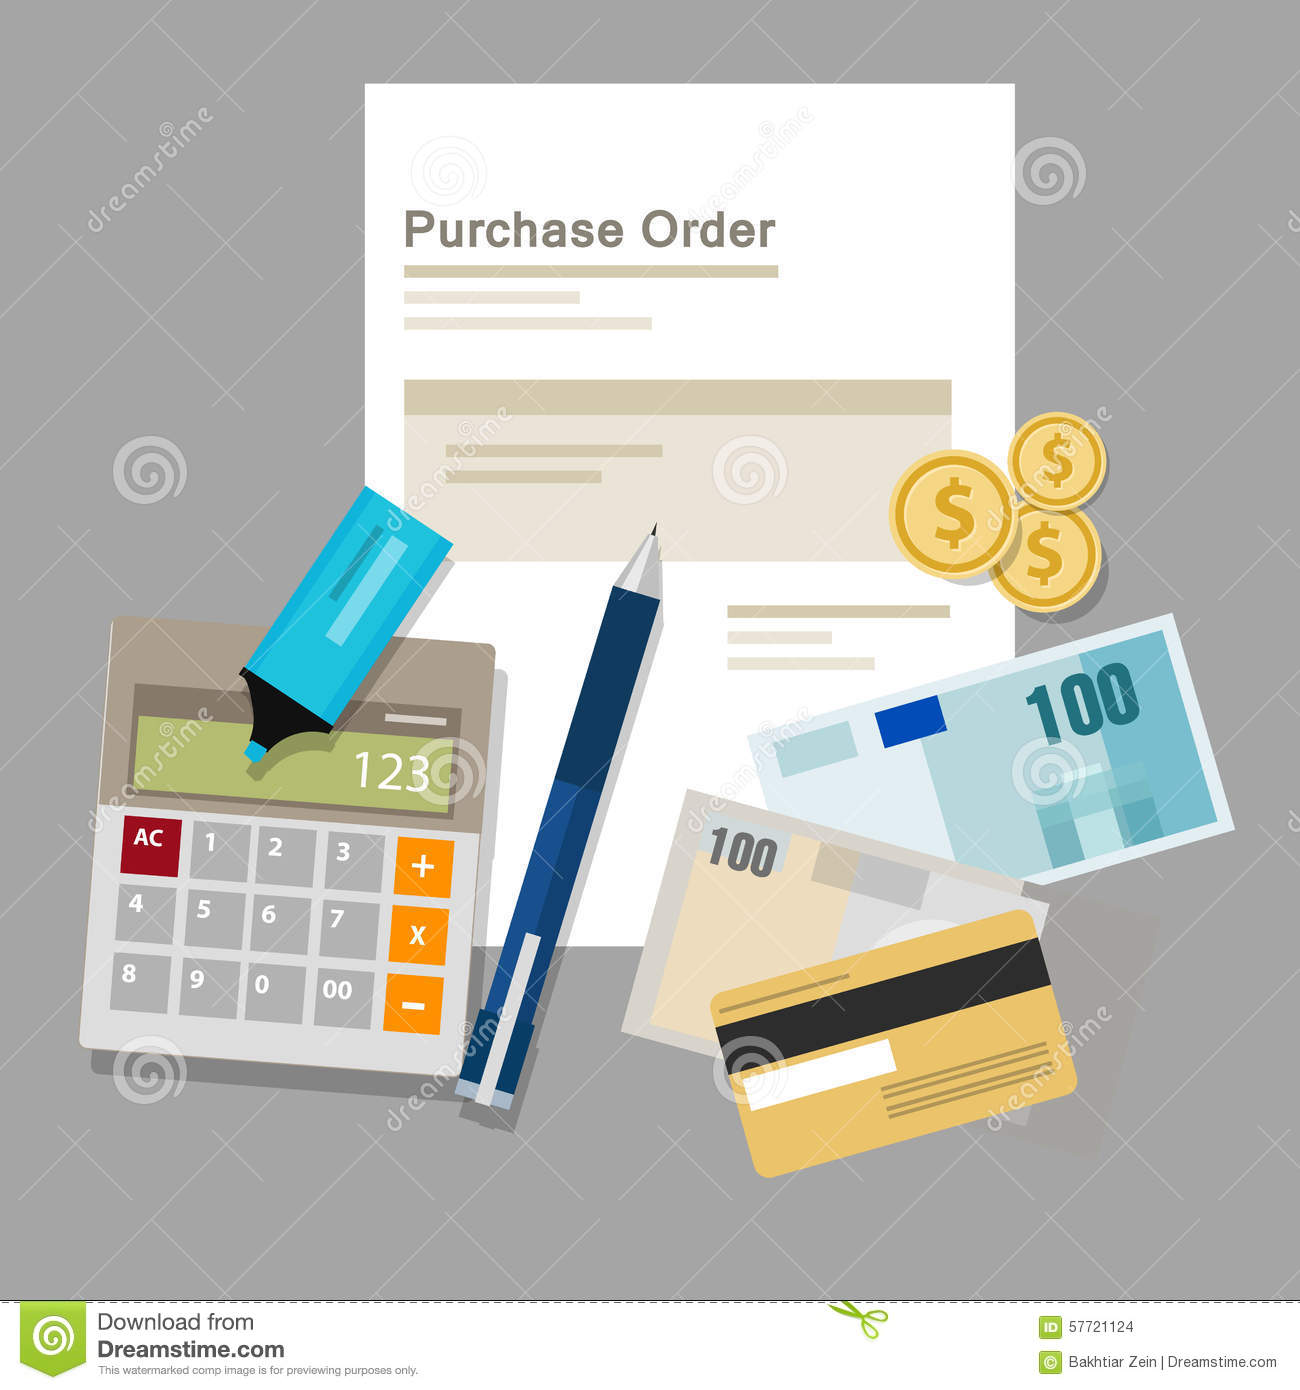 Is A Purchase Order A Legal Document purchase inquiry letter – Is a Purchase Order a Legal Document